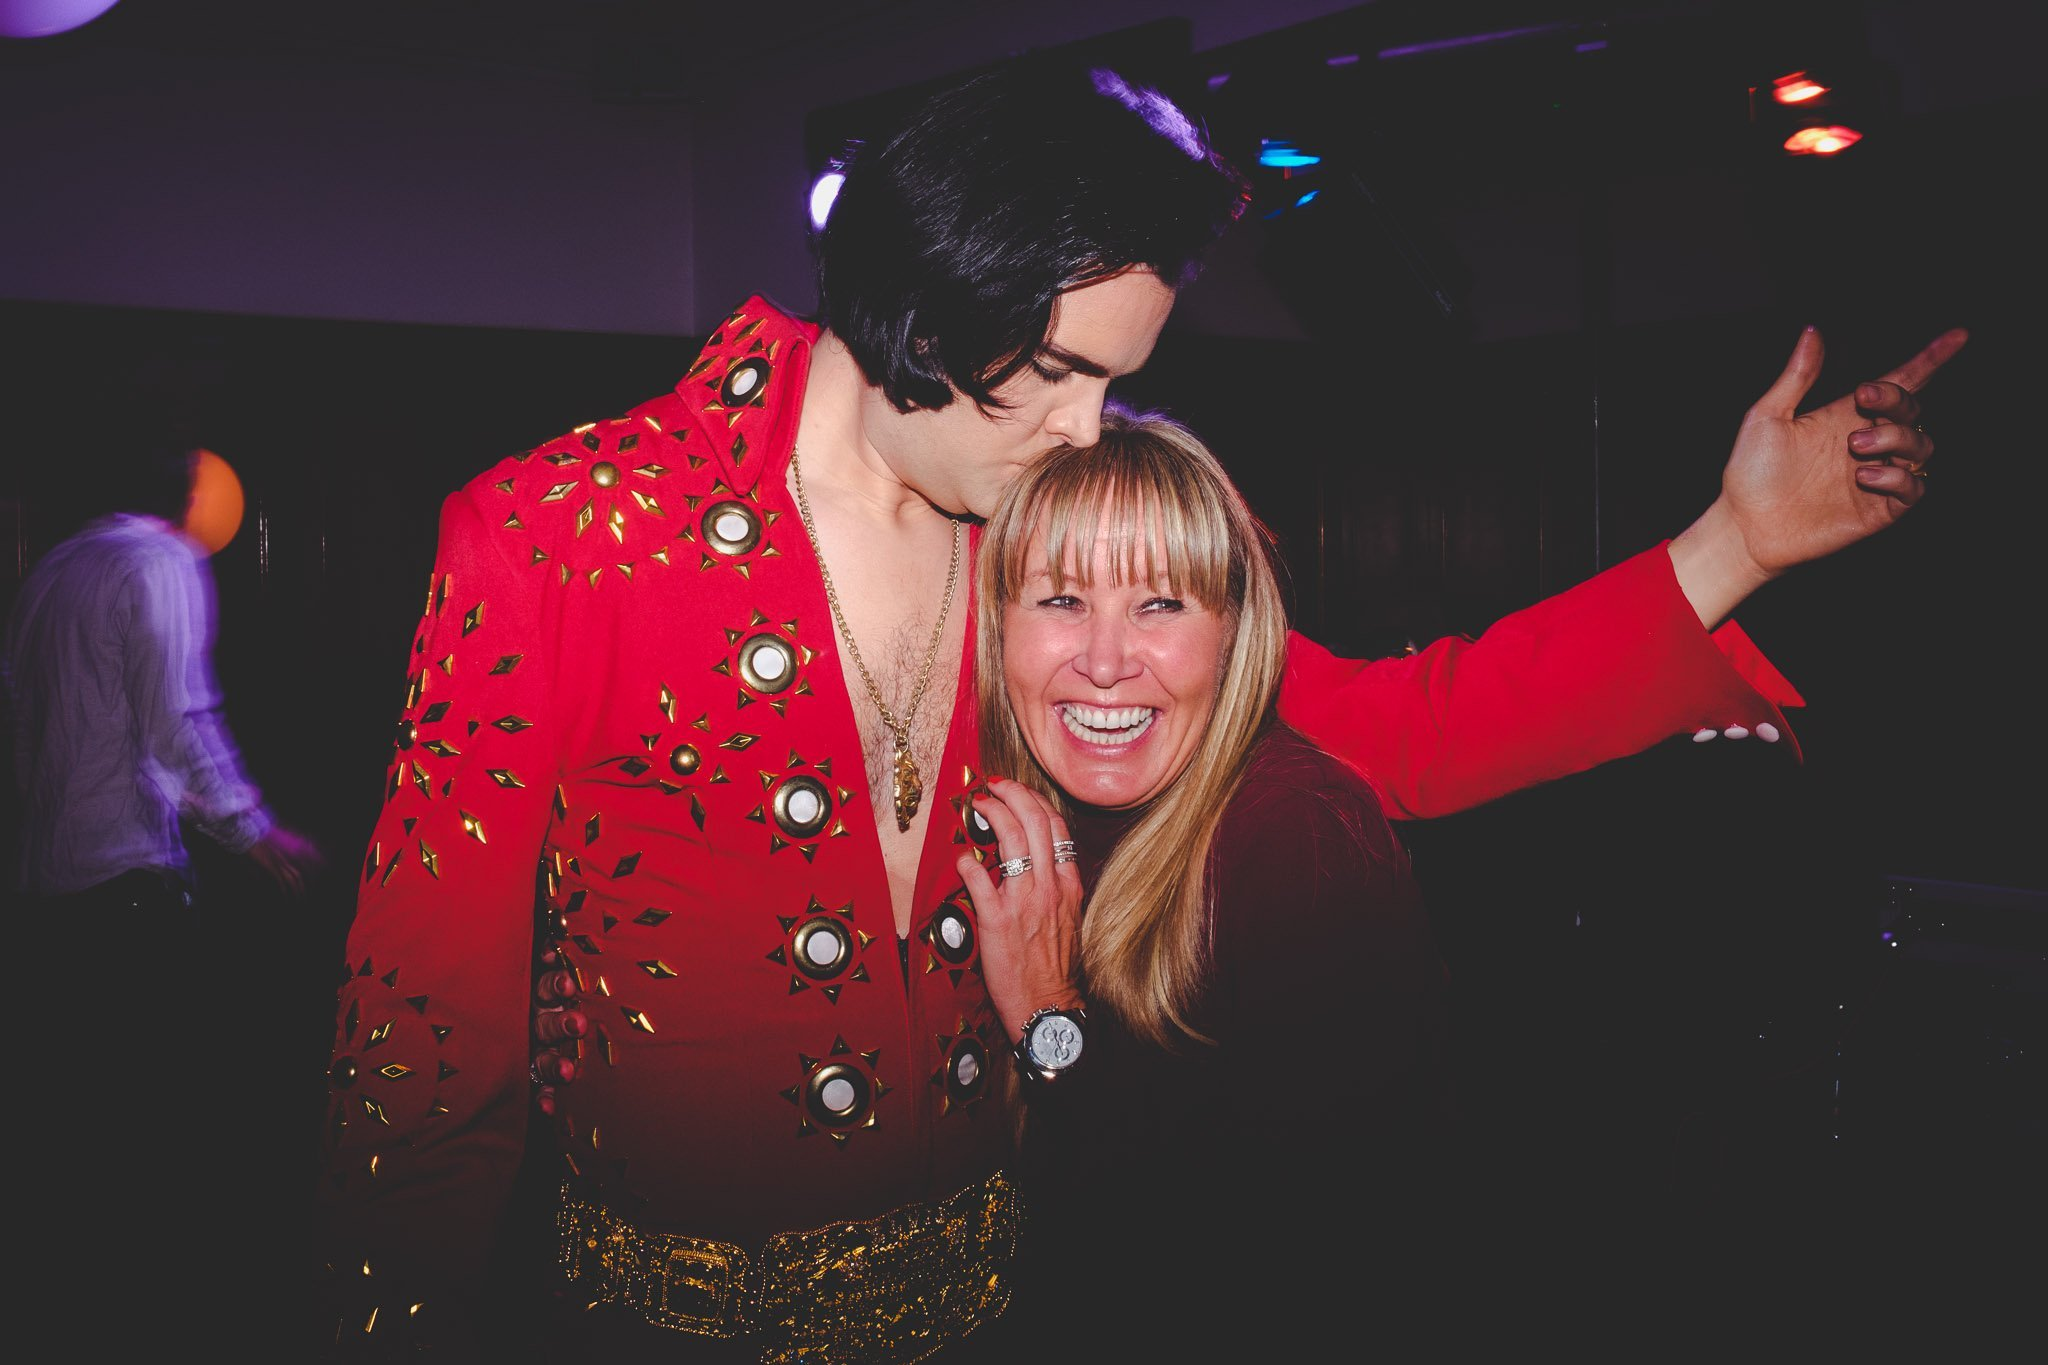 A smiling female wedding guest hugs an Elvis impersonator at Hawksmoor Steakhouse in Guildhall London. Photography by thatthingyoupluck.